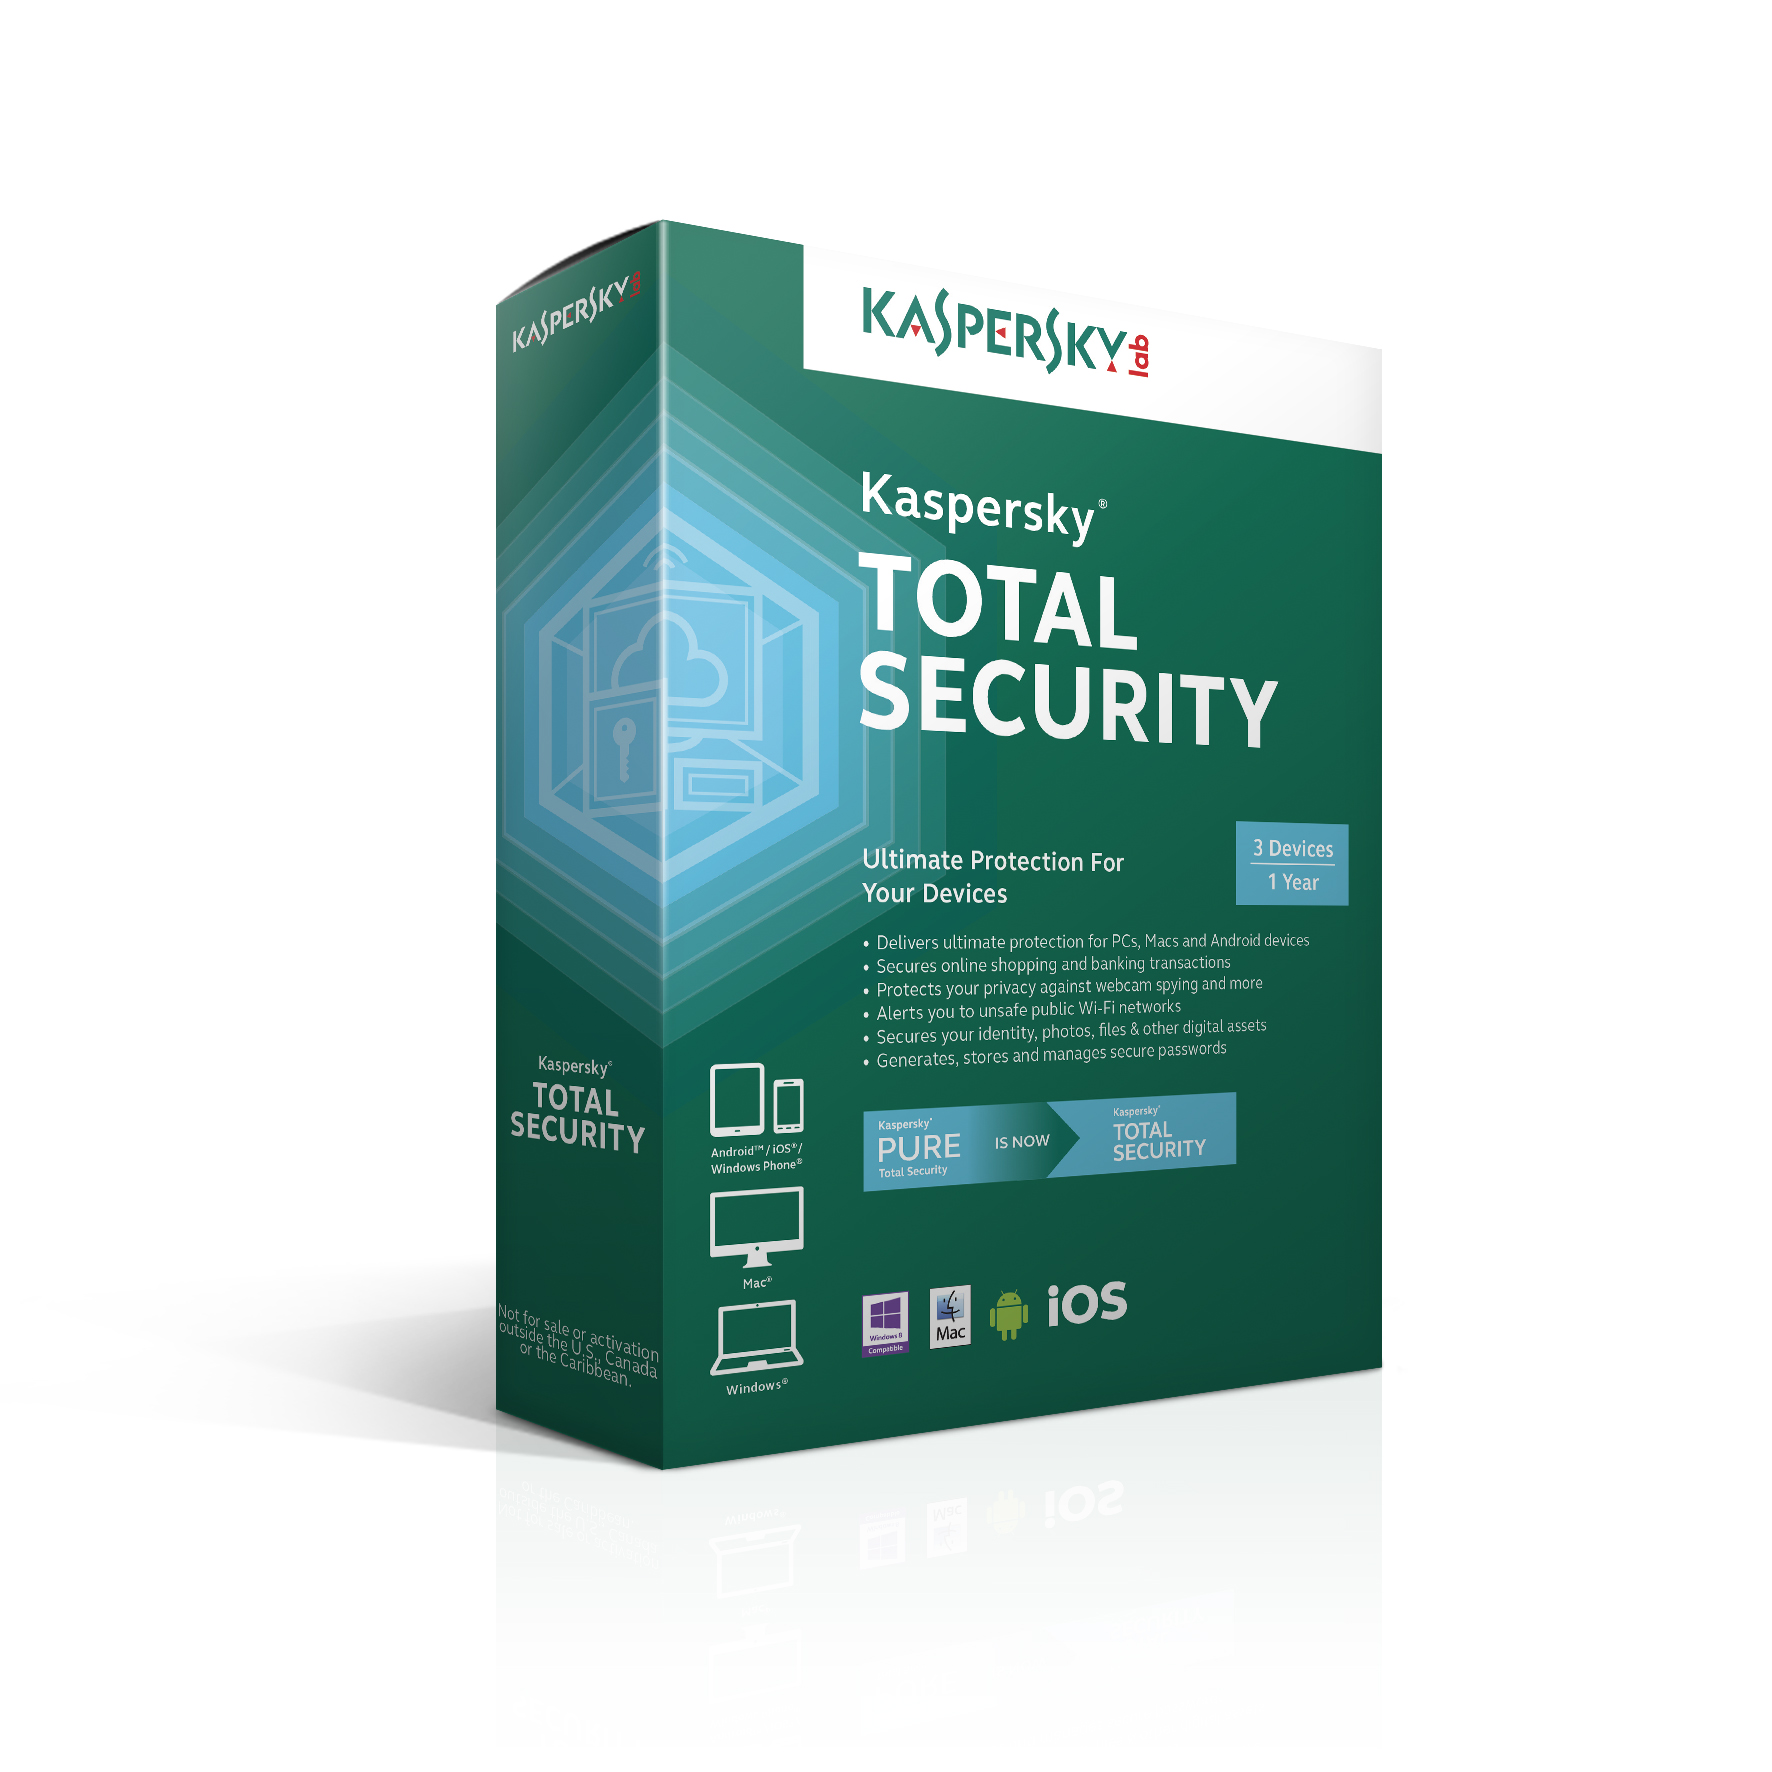 Introducing Kaspersky Total Security | Kaspersky official blog